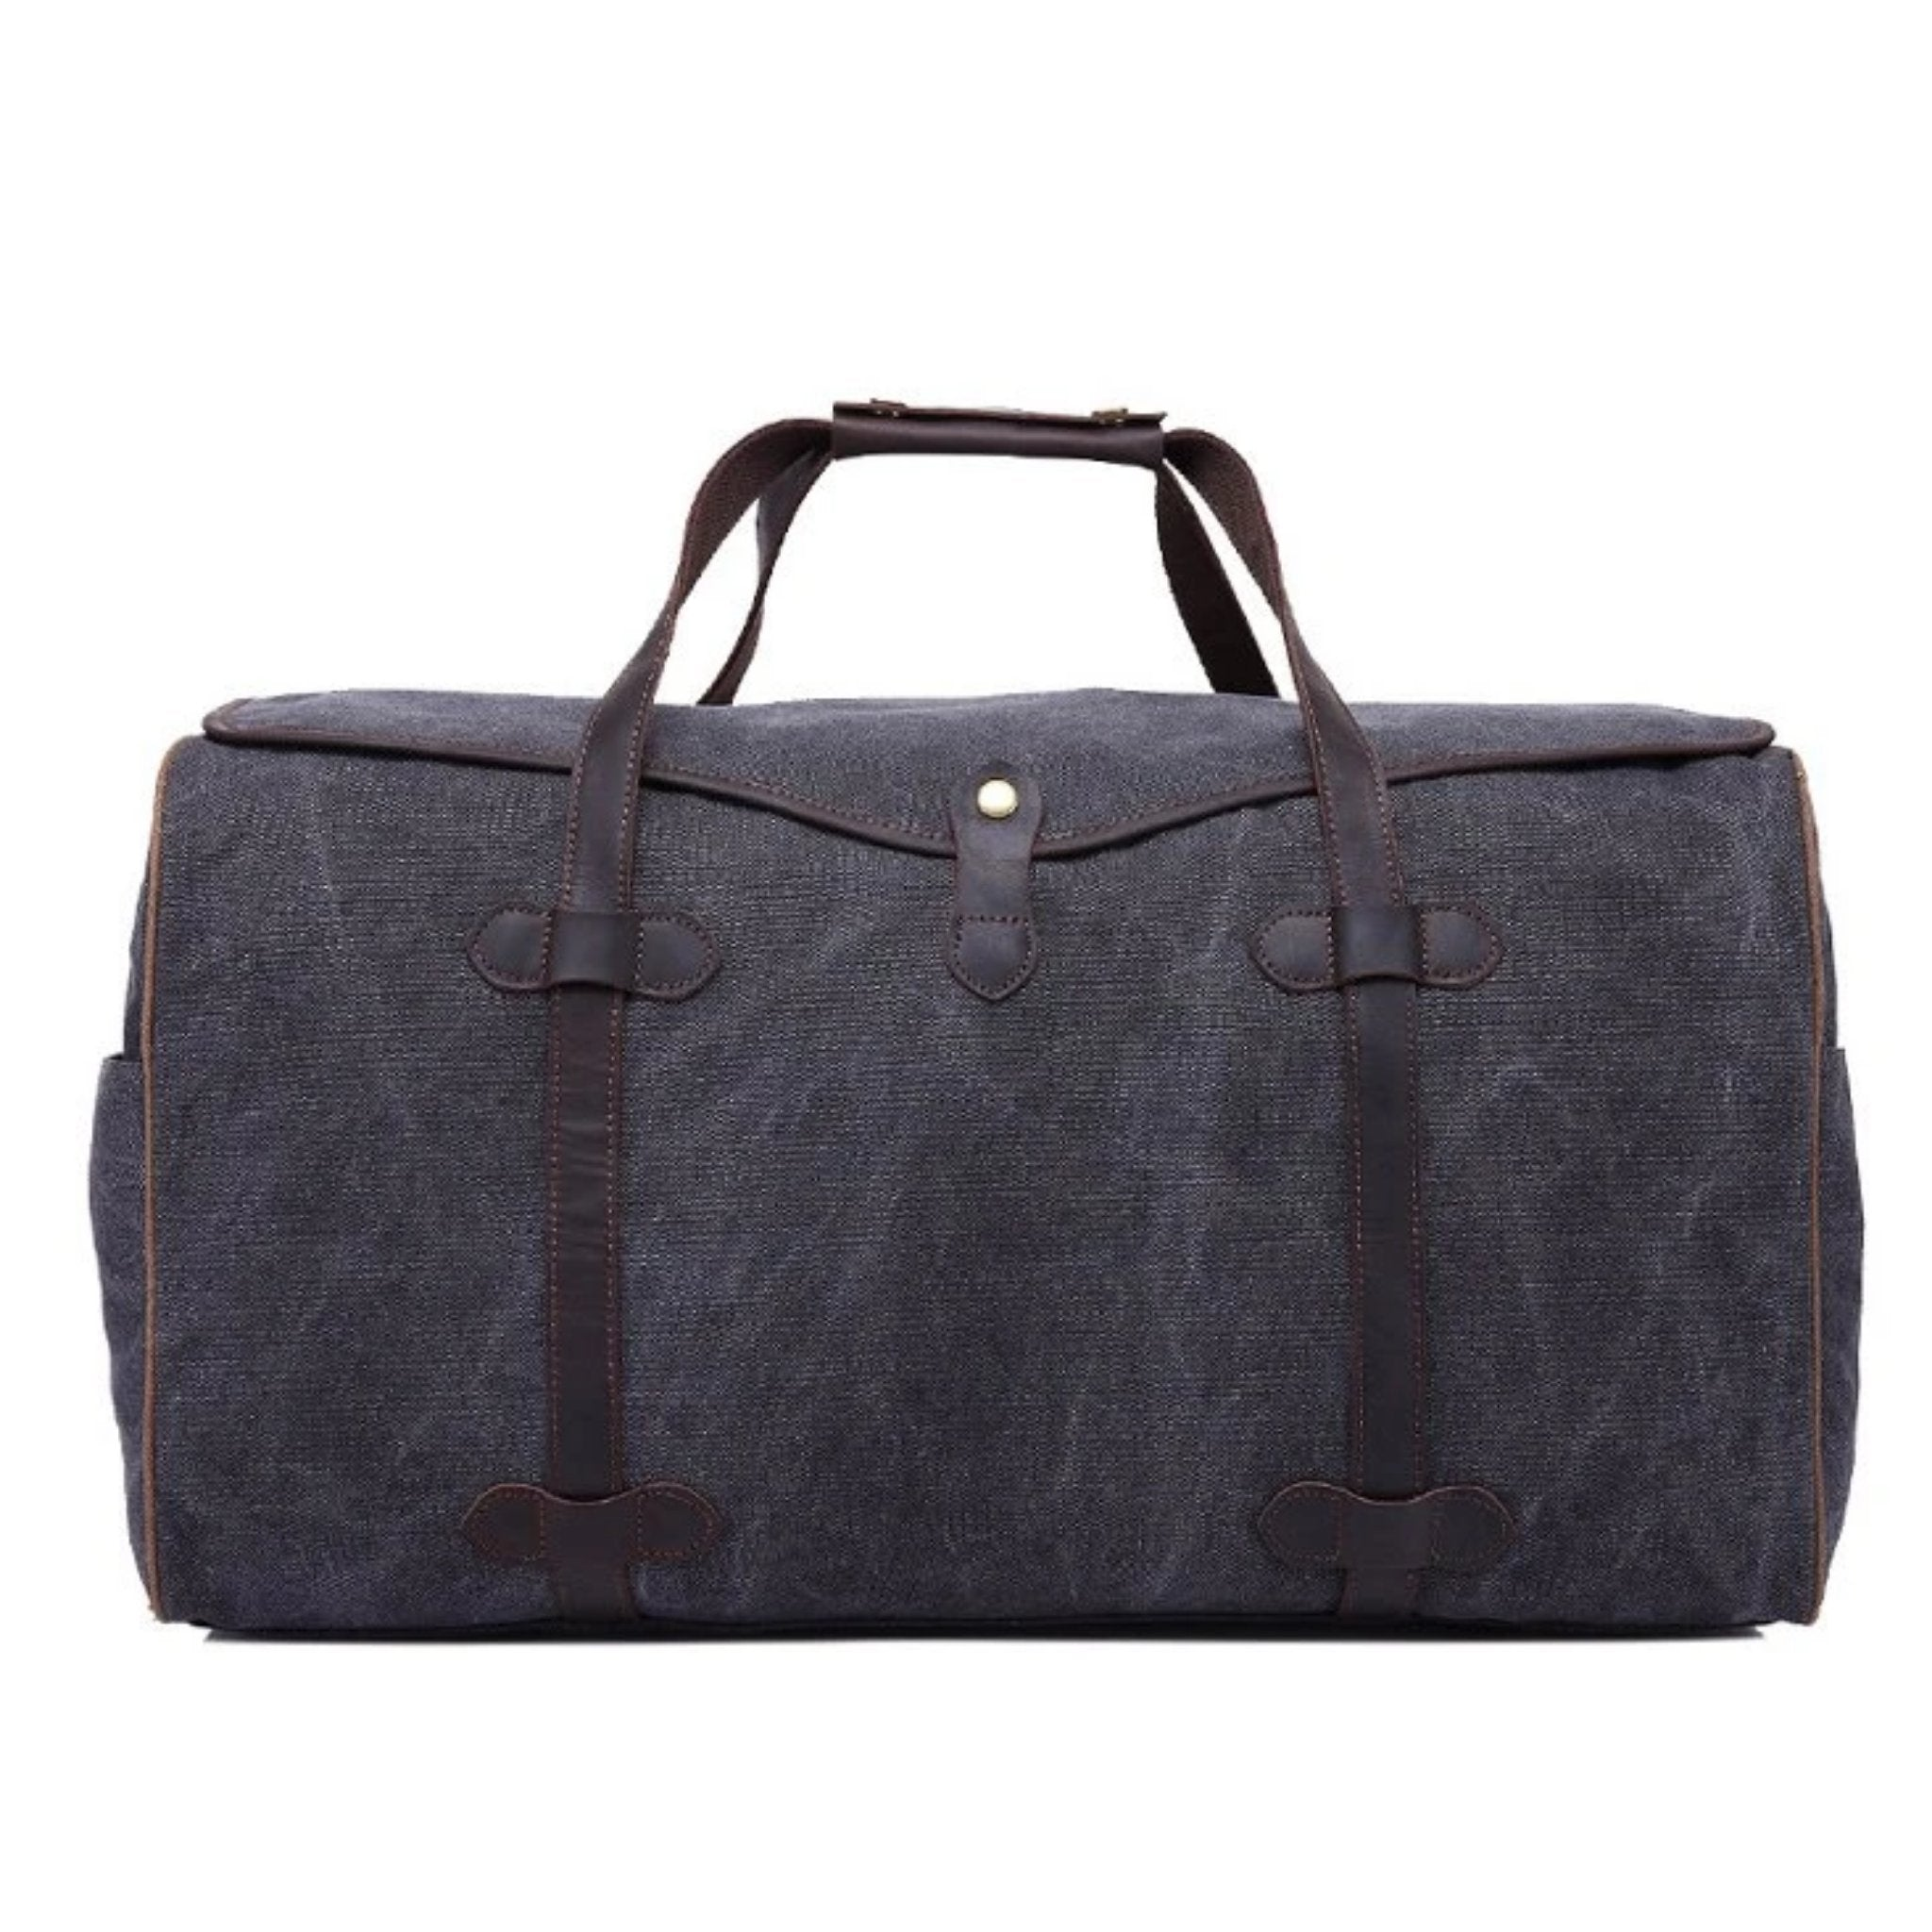 Waxed Canvas with Leather Trim Waterproof Travel Duffel Bag - Blue Sebe